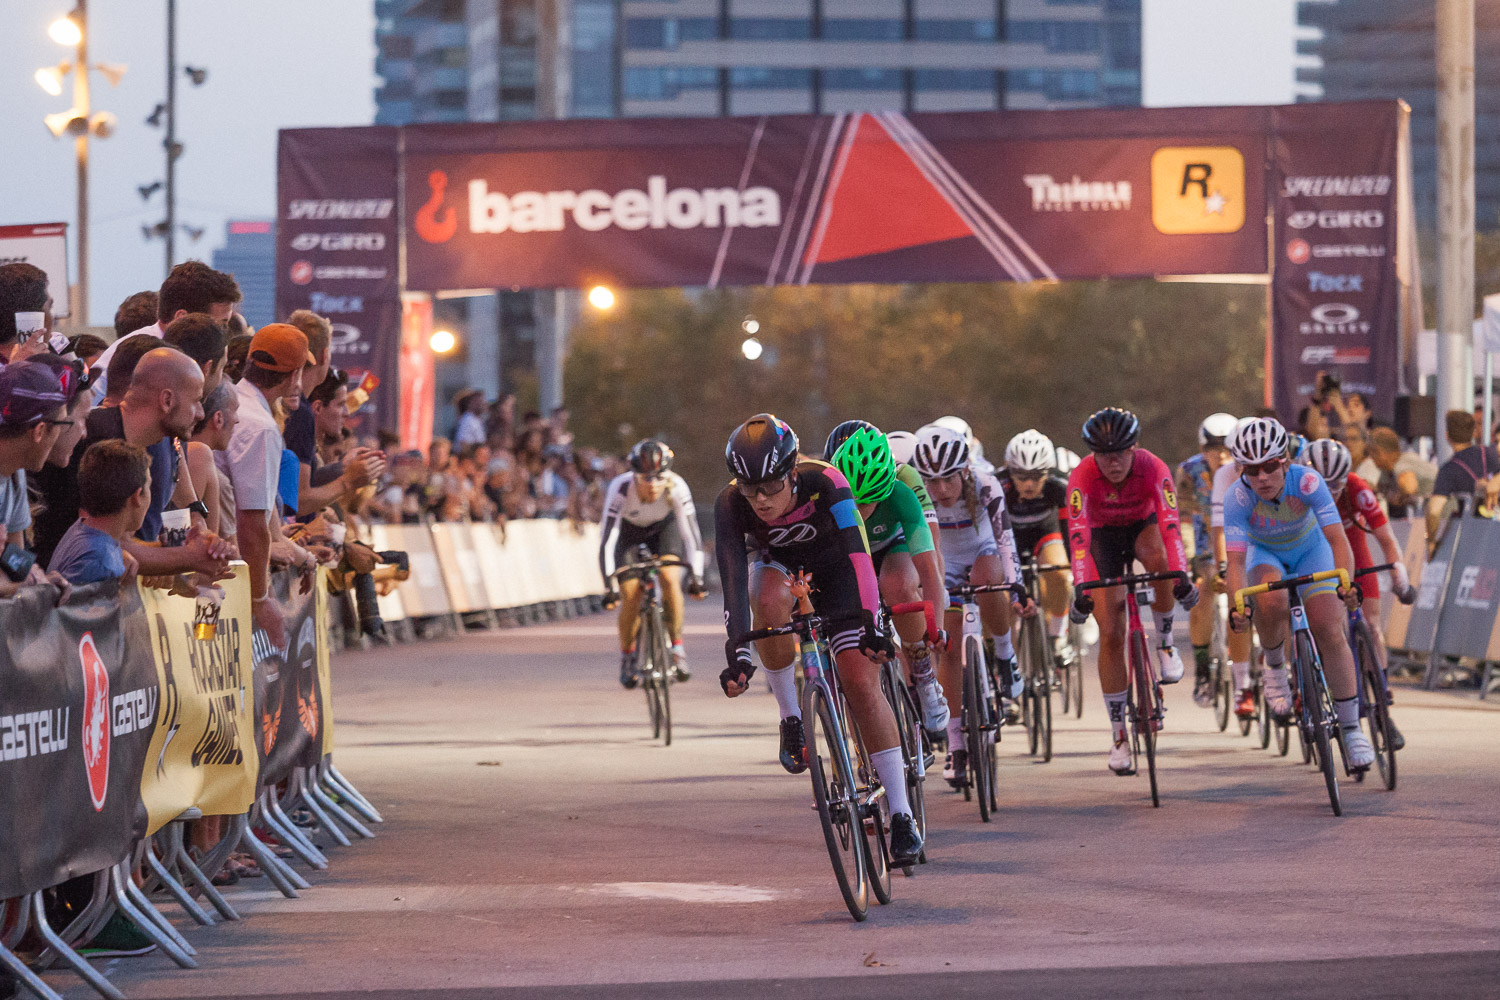 8bar-team-red-hook-crit-barcelona-fixie-fixed-gear-173